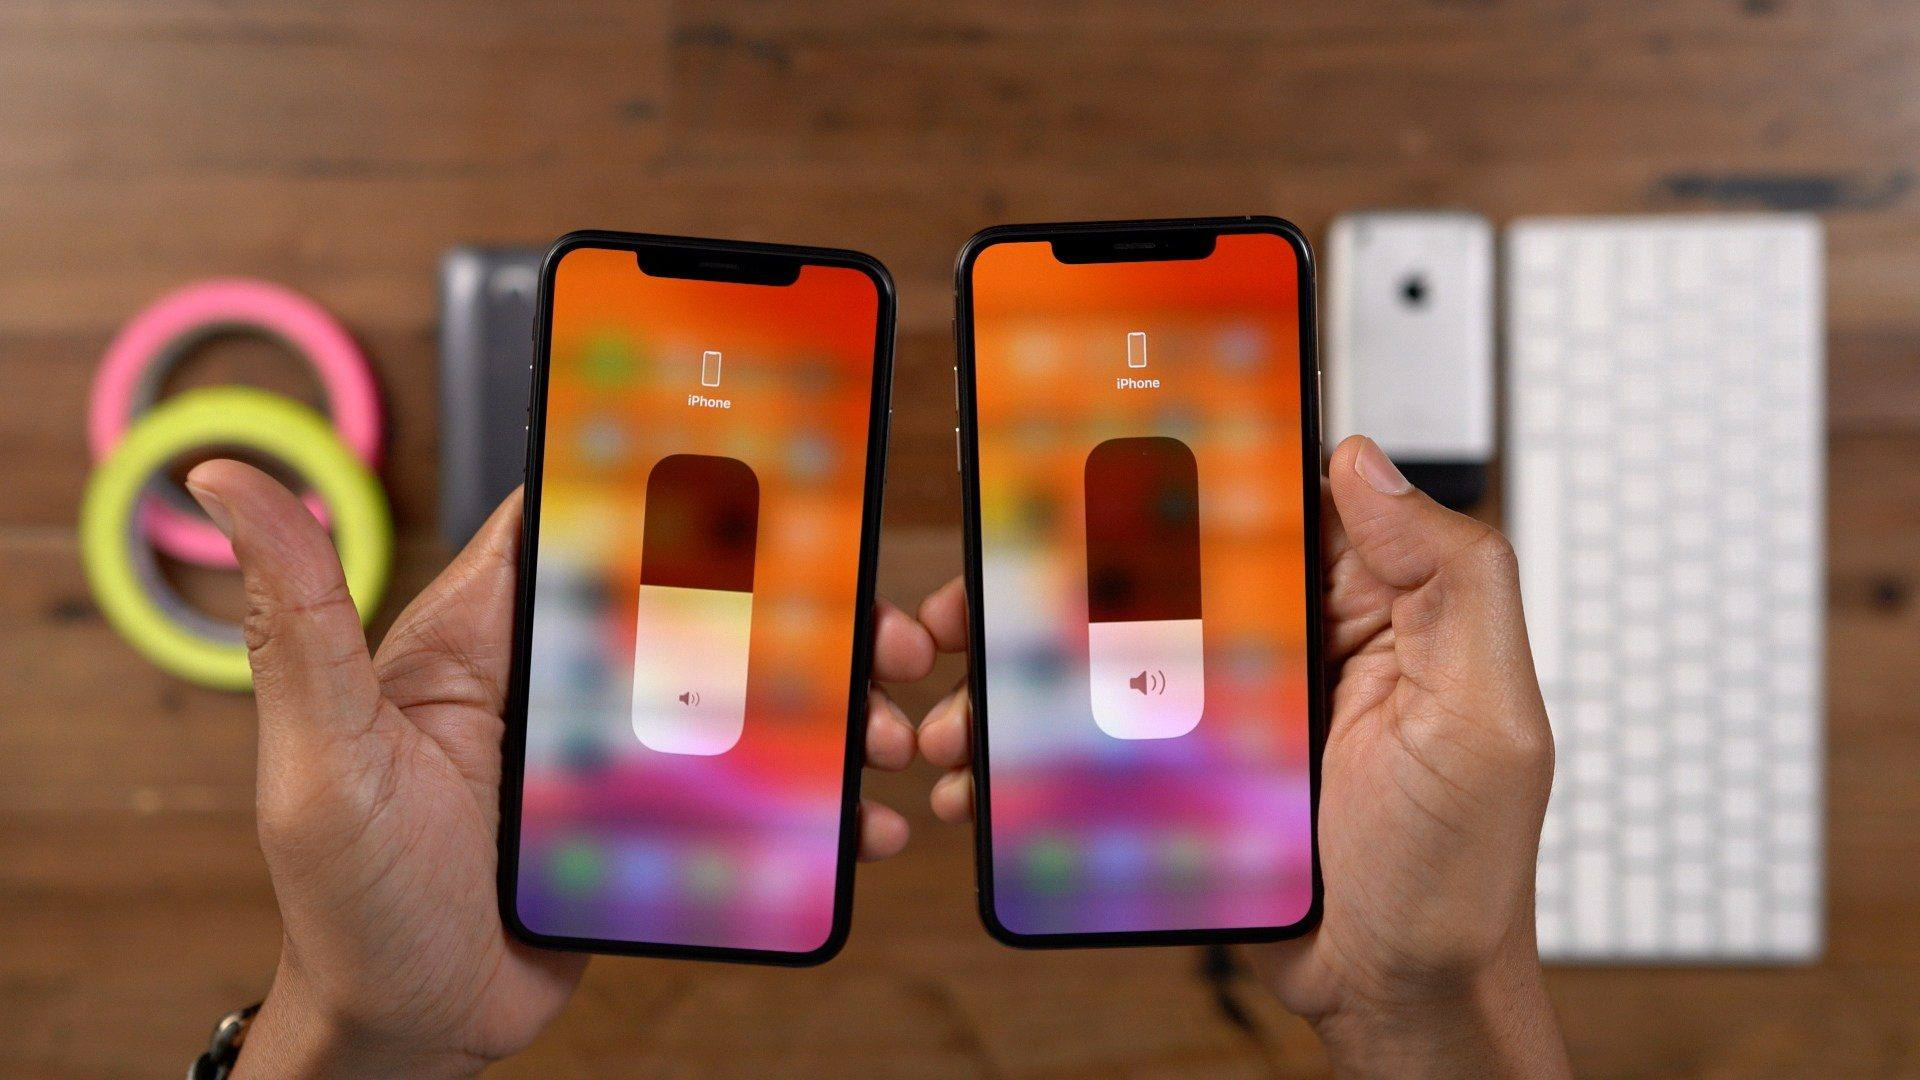 iOS-13.1-Beta-1-changes-and-features